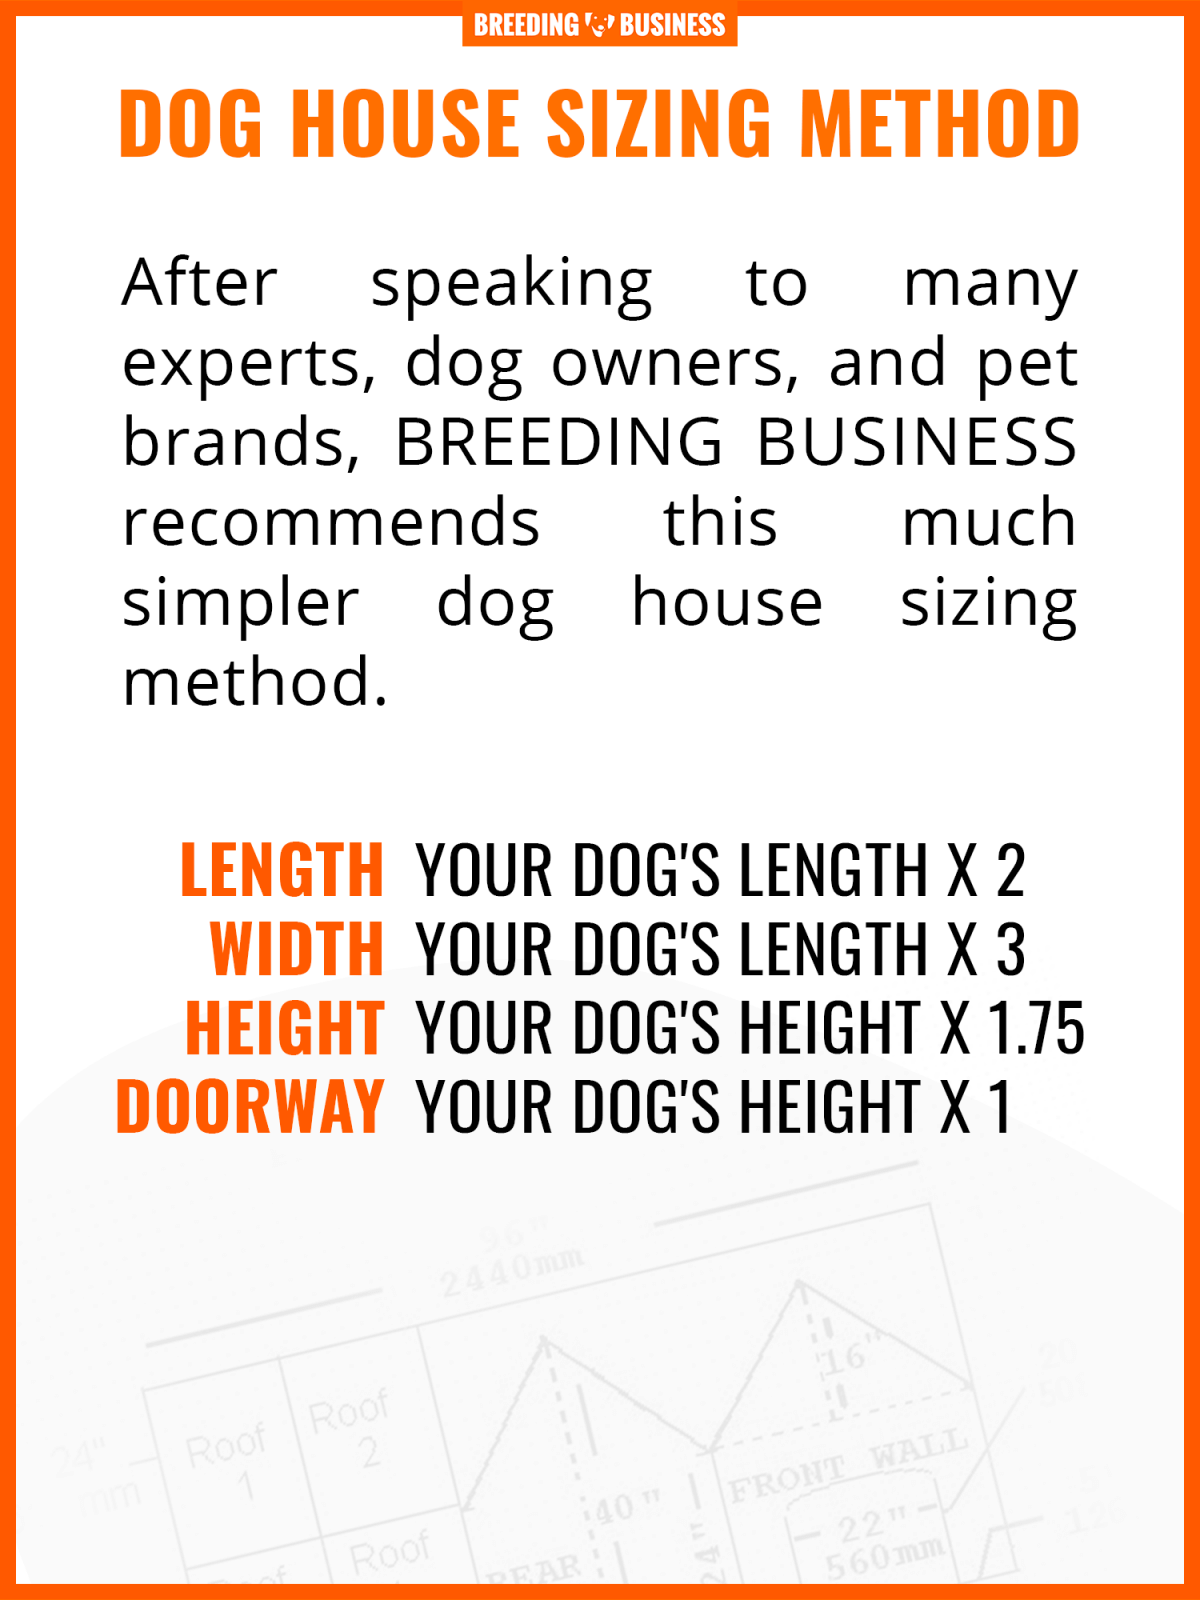 Breeding Business' dog house sizing formula